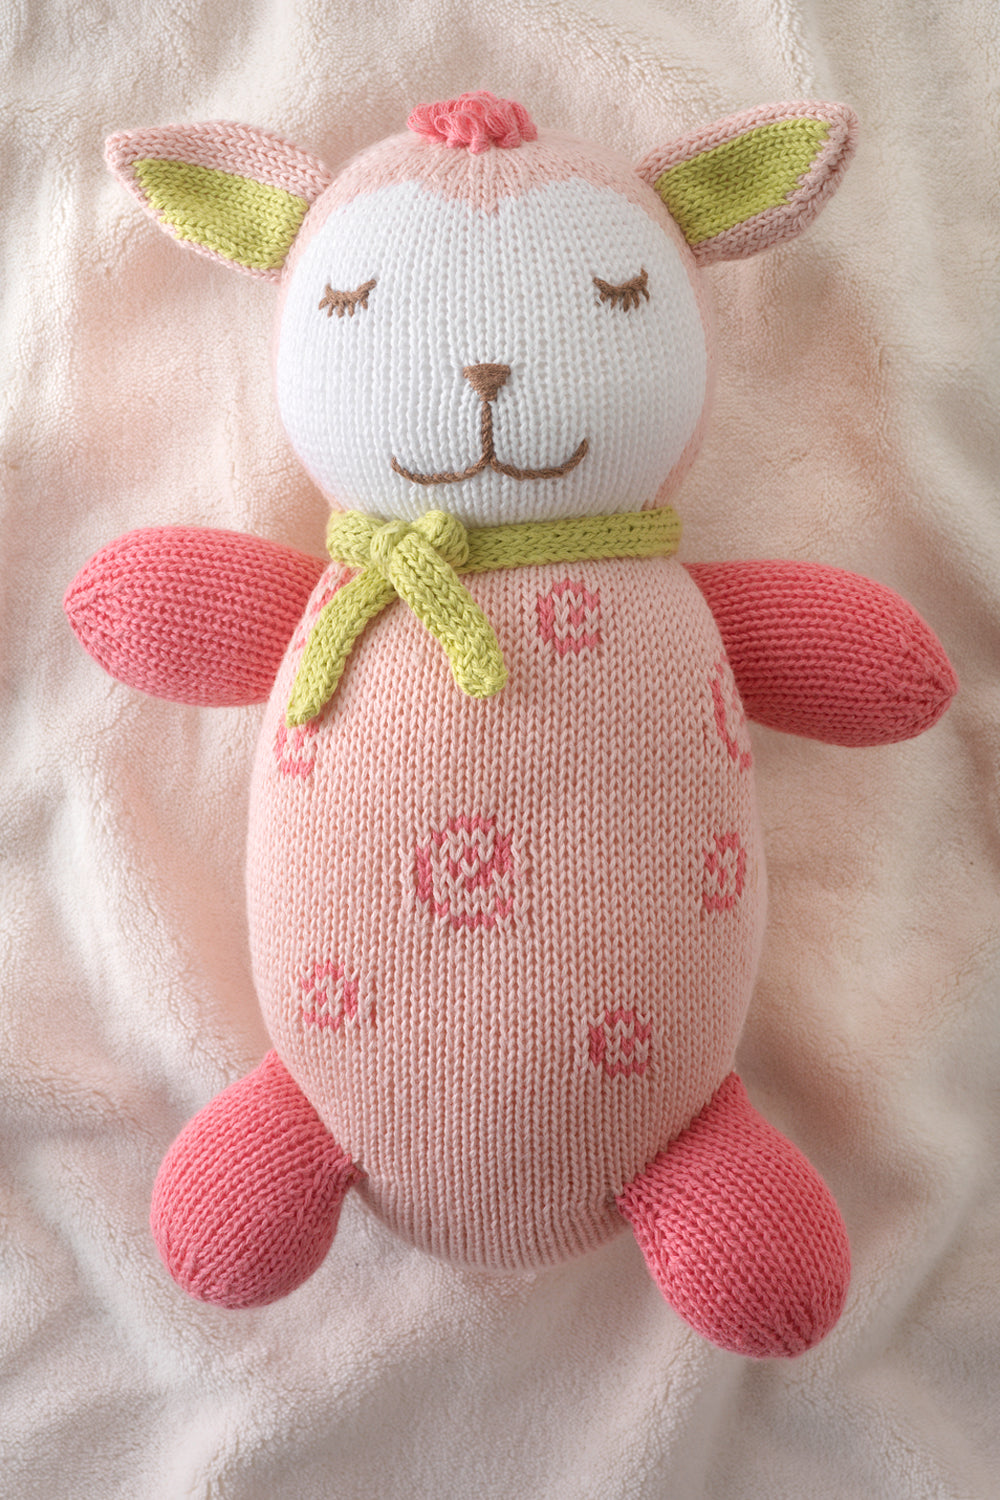 joobles-fair-trade-organic-lamb-stuffed-animal-cutie-the-lamb